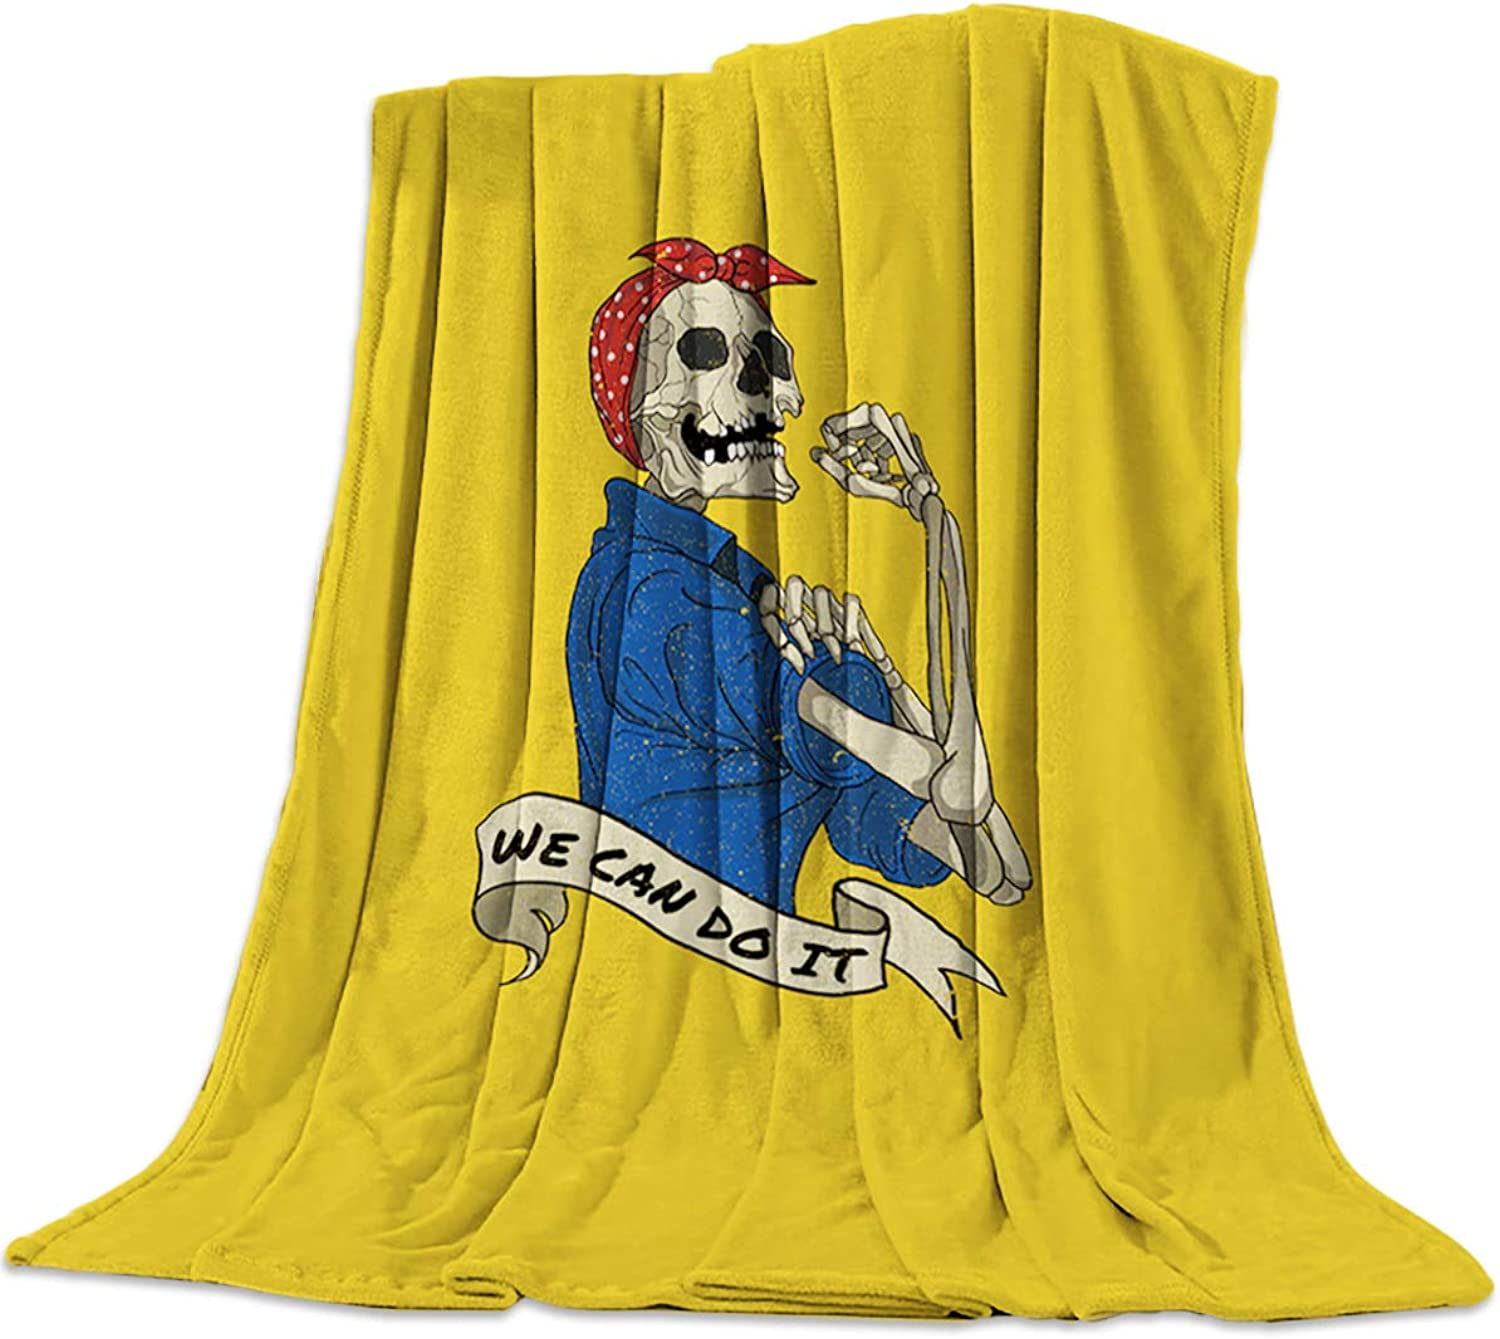 Skulls Flannel Throw Blanket Skull Girl We Can Do It Yellow Background Printed Warm Plush Lightweight Couch Bed Blanket All Season Use, 50x80 inch